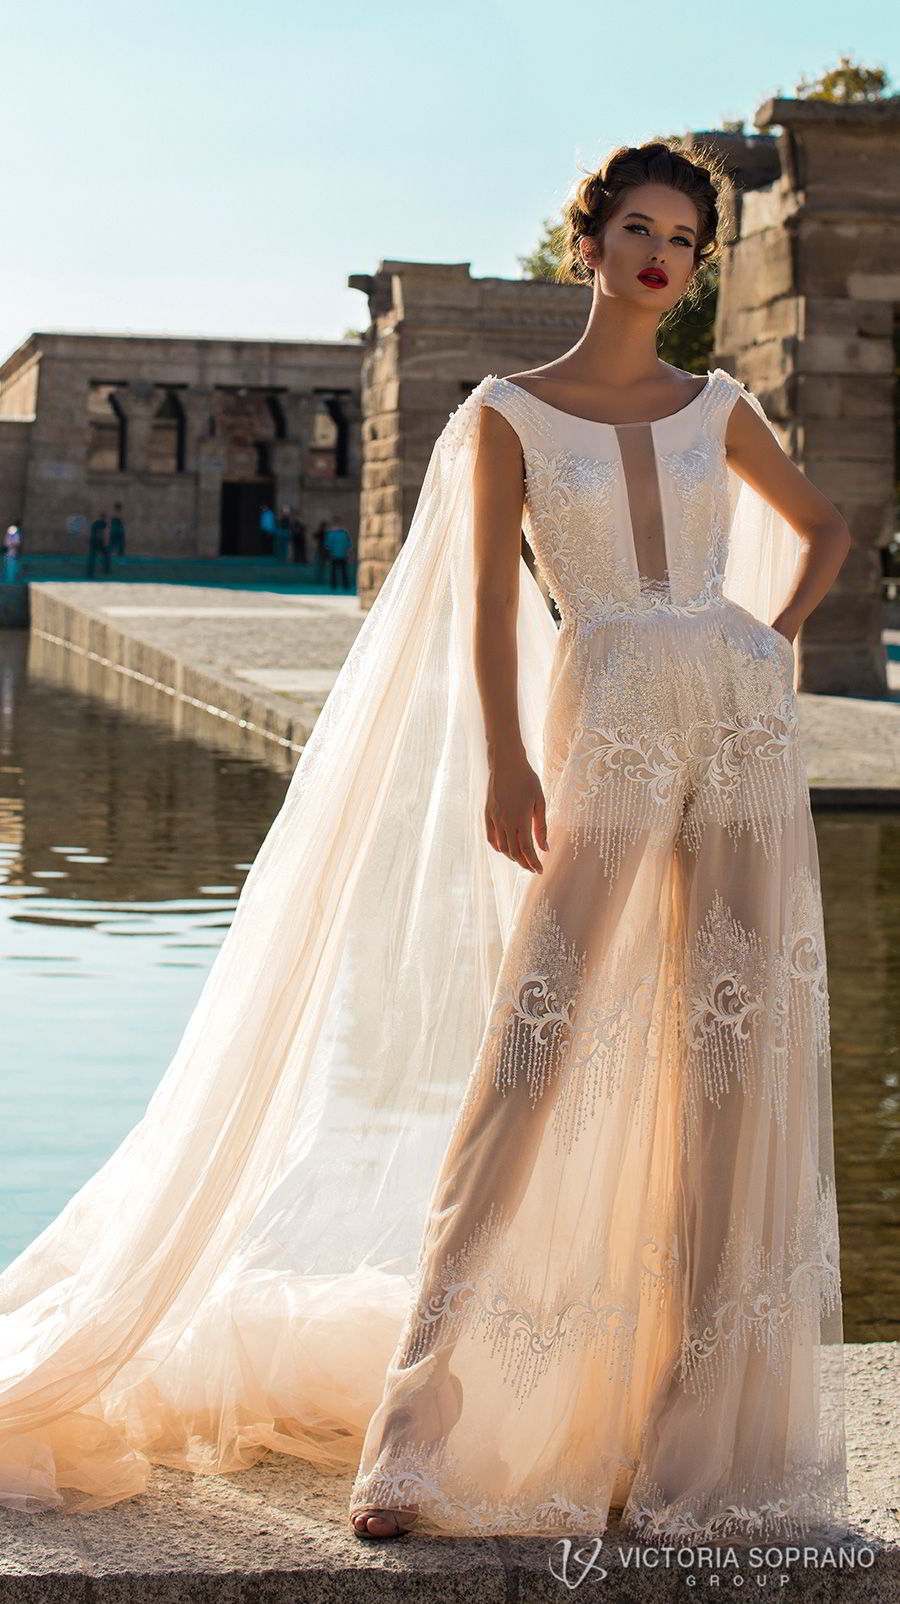 victoria soprano 2018 bridal cap sleeves bateau neckline full embellishment modern champagne color soft a line wedding dress v back chapel cape train (emma) mv